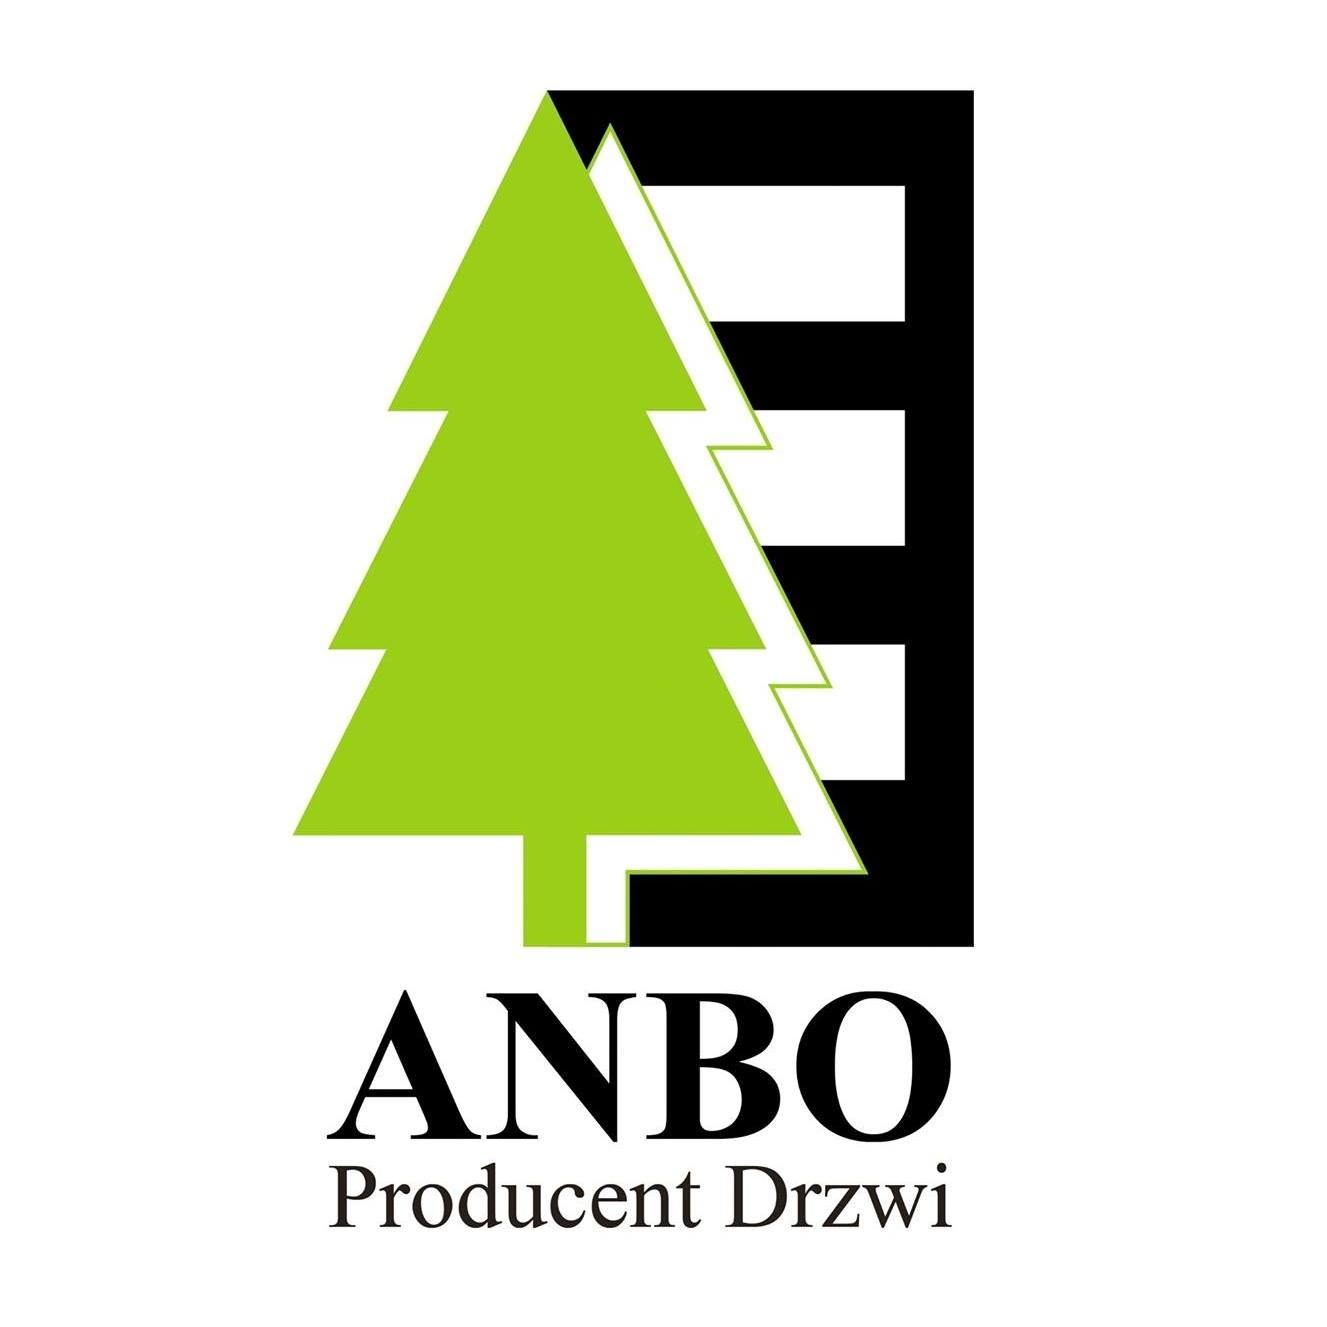 anbo.